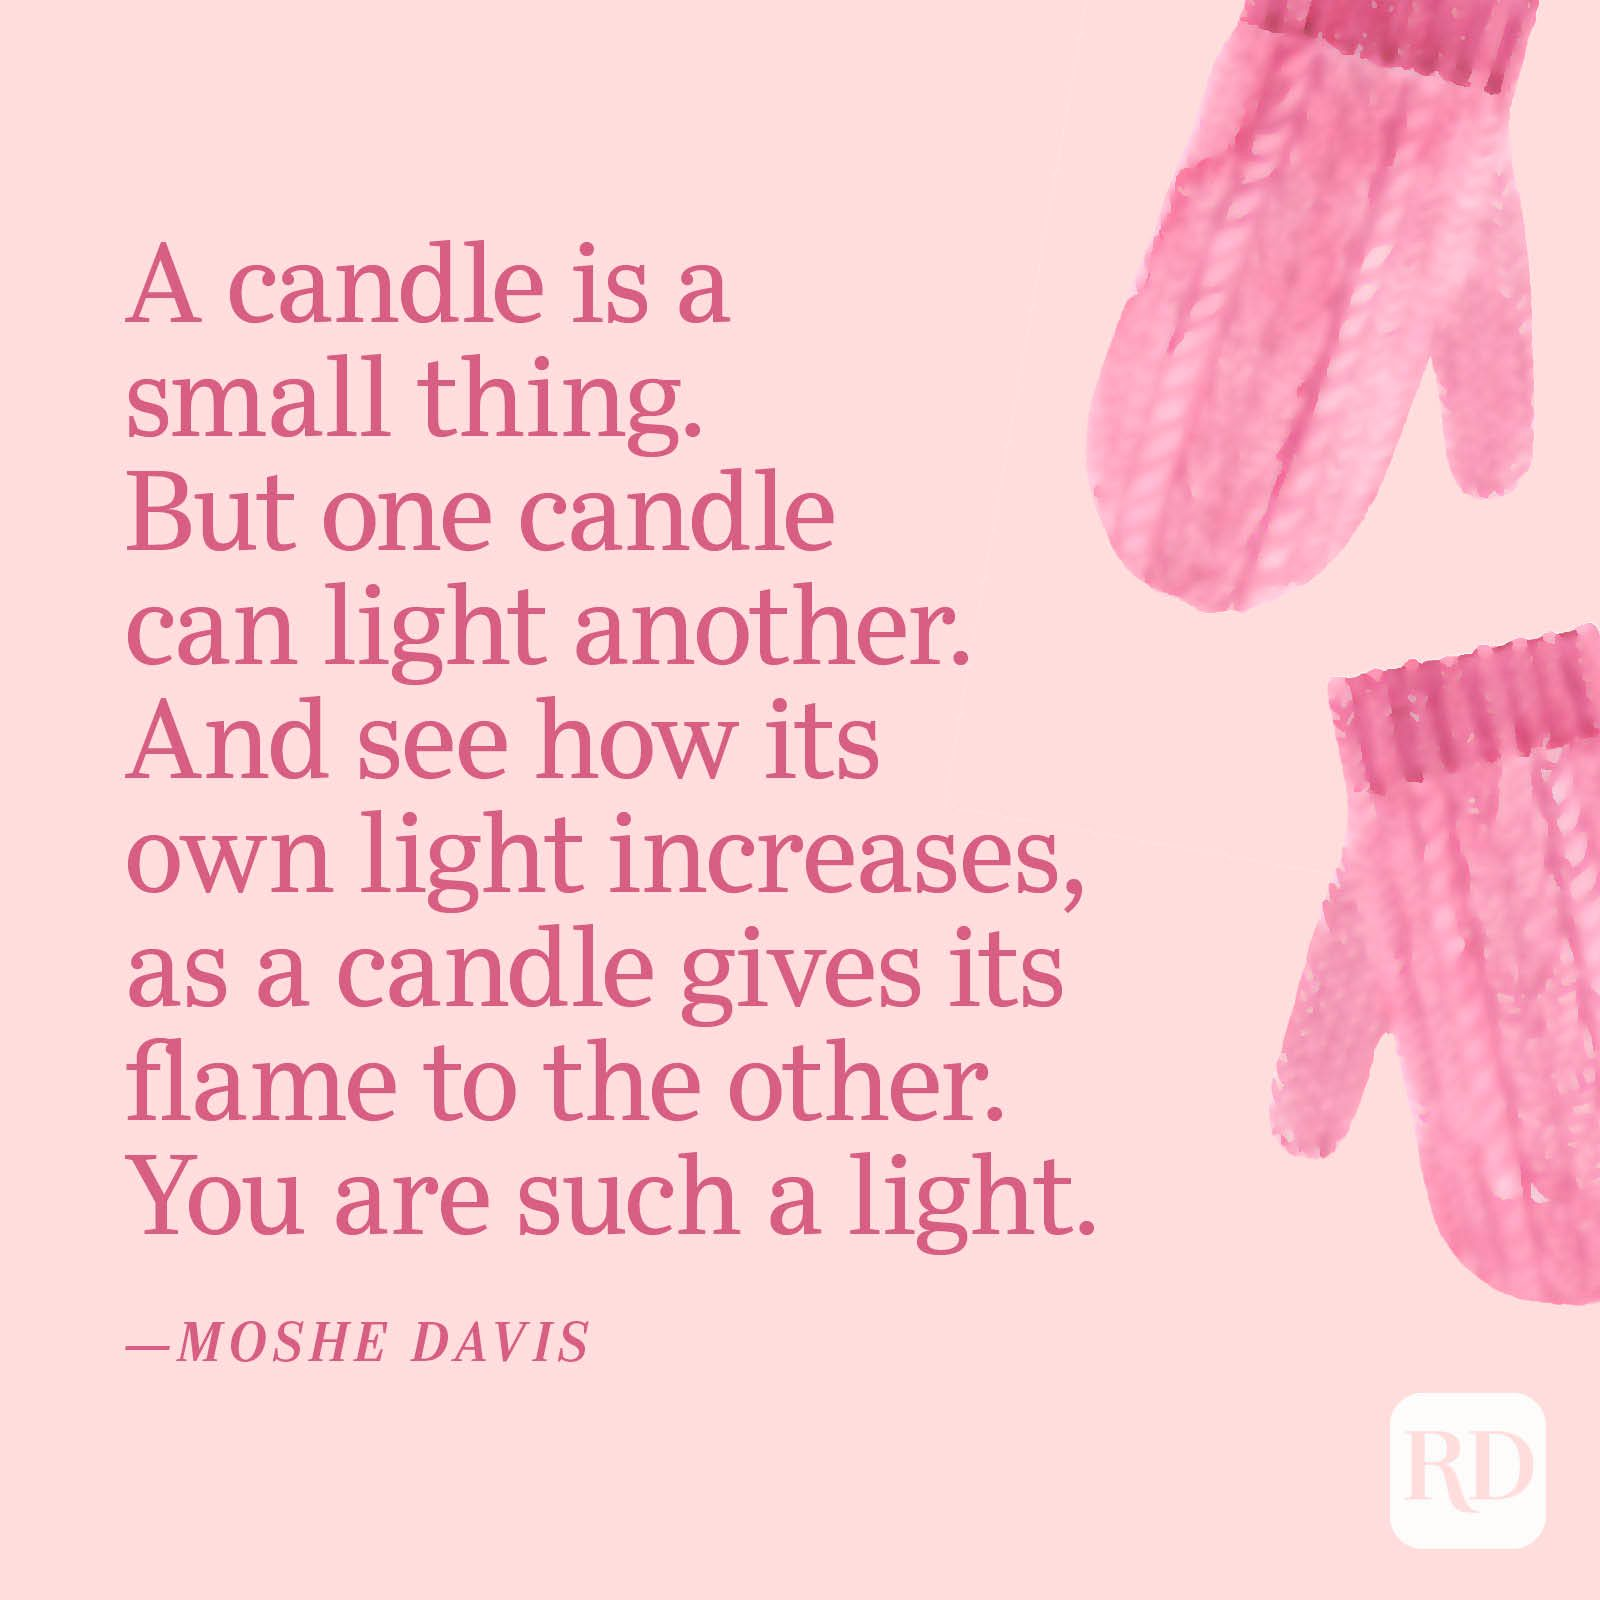 """""""A candle is a small thing. But one candle can light another. And see how its own light increases, as a candle gives its flame to the other. You are such a light."""" —Moshe Davis"""